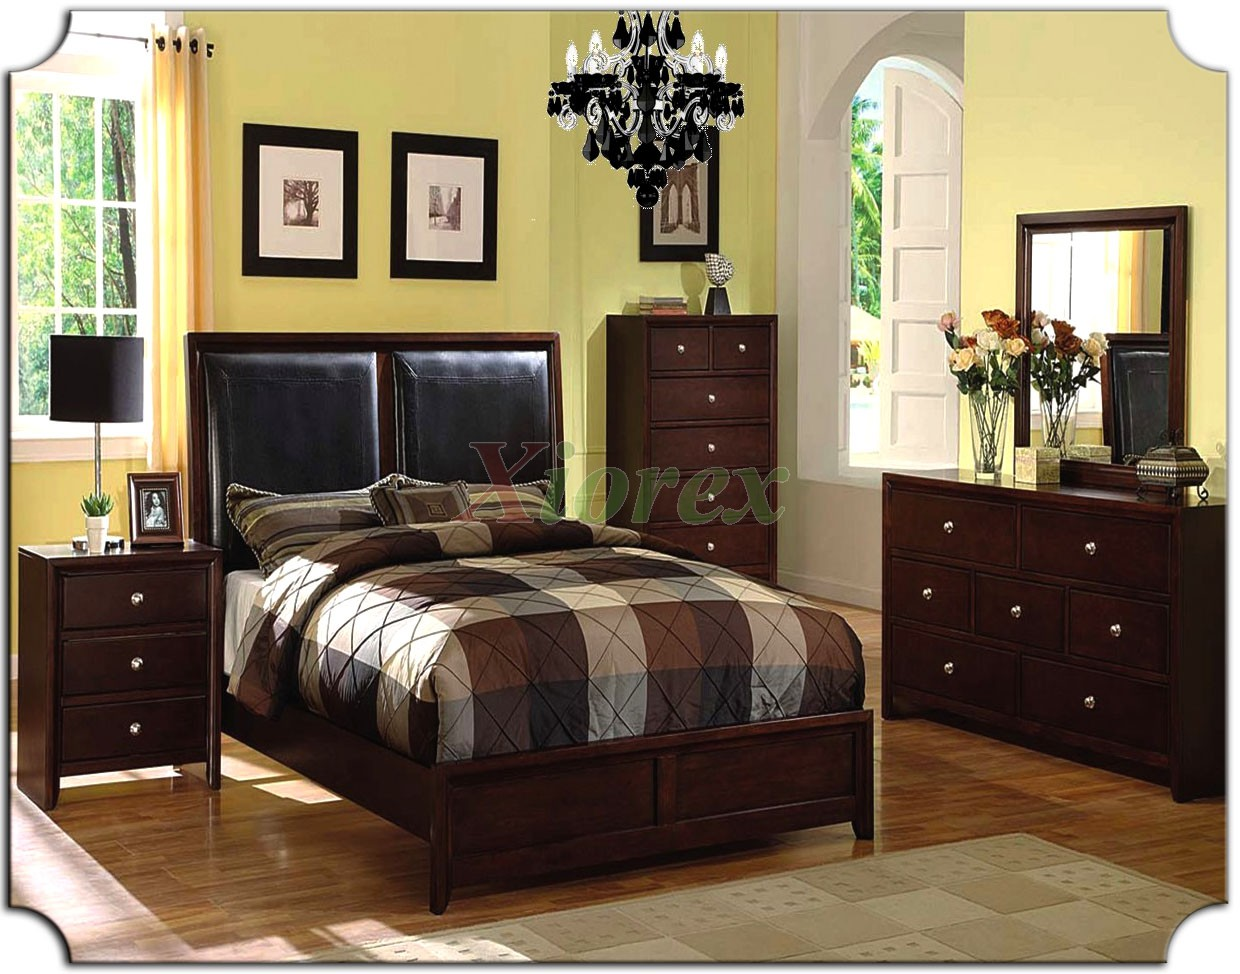 Bedroom Furniture Set with Leather Panel Headboard Beds 161  Xiorex ...